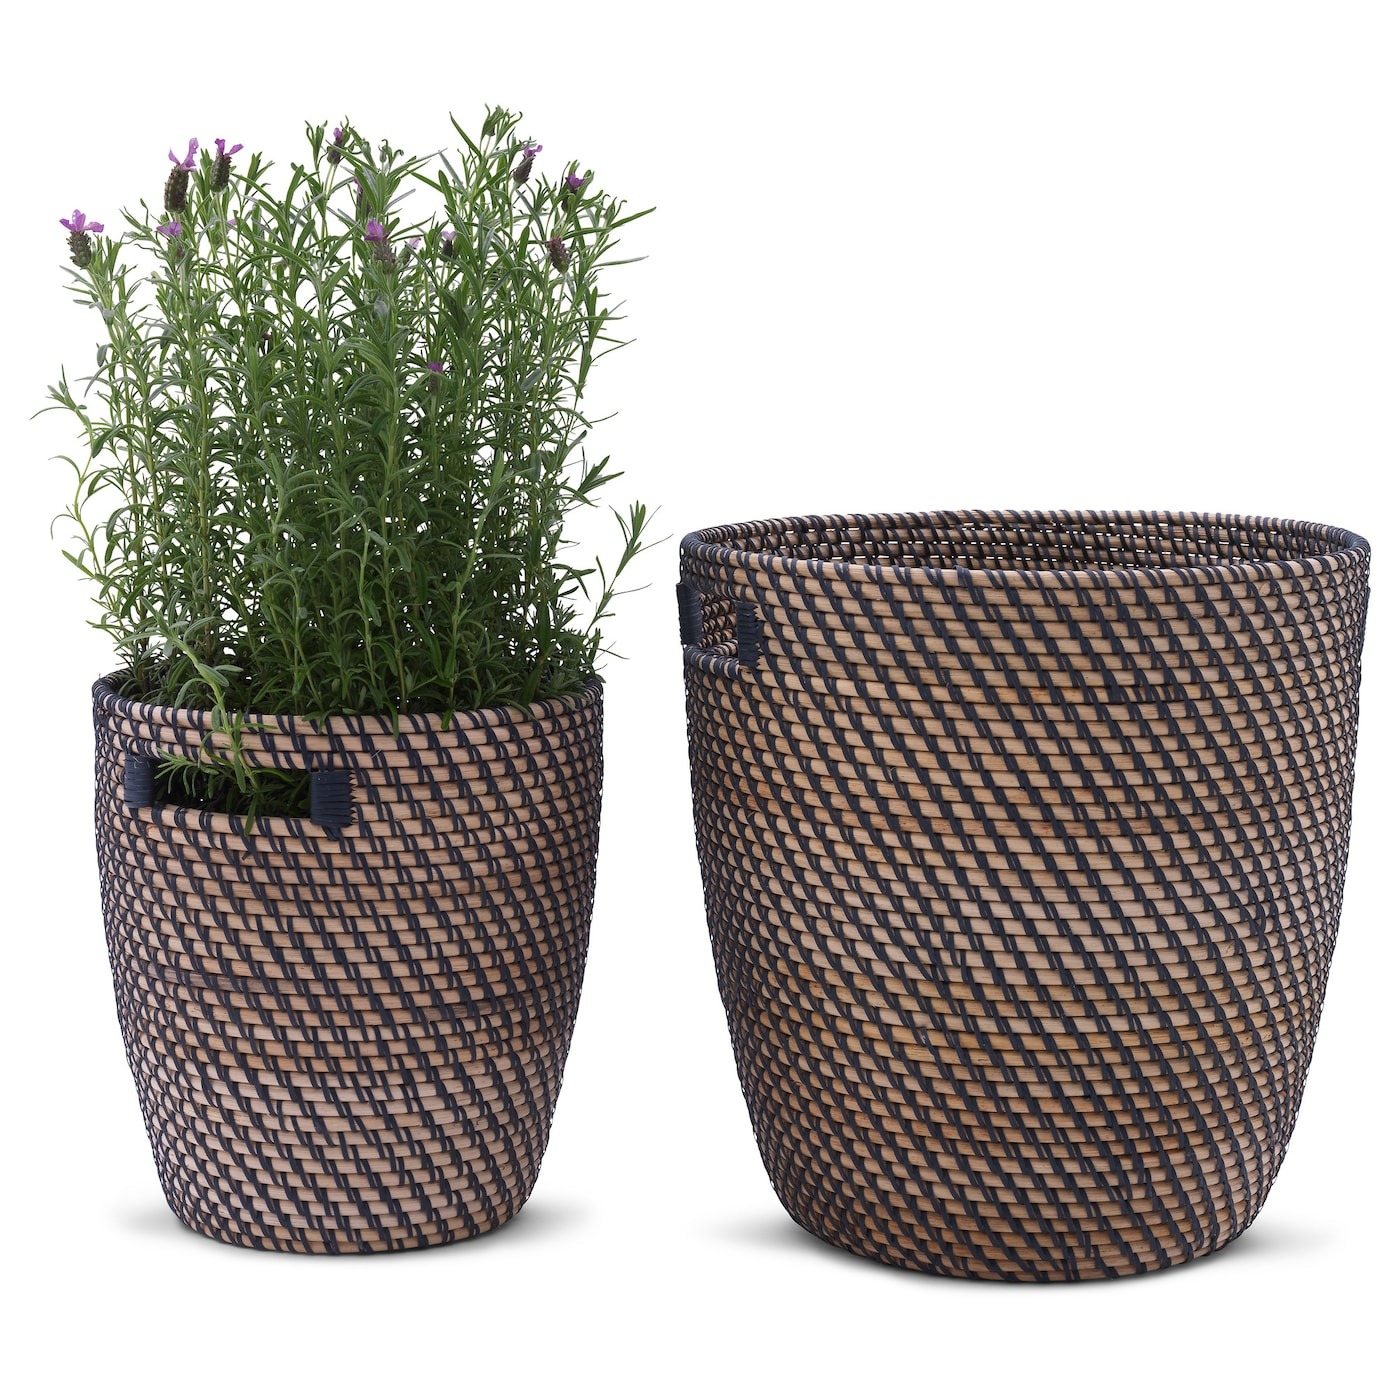 r gkorn plant pot rattan 24 cm ikea. Black Bedroom Furniture Sets. Home Design Ideas